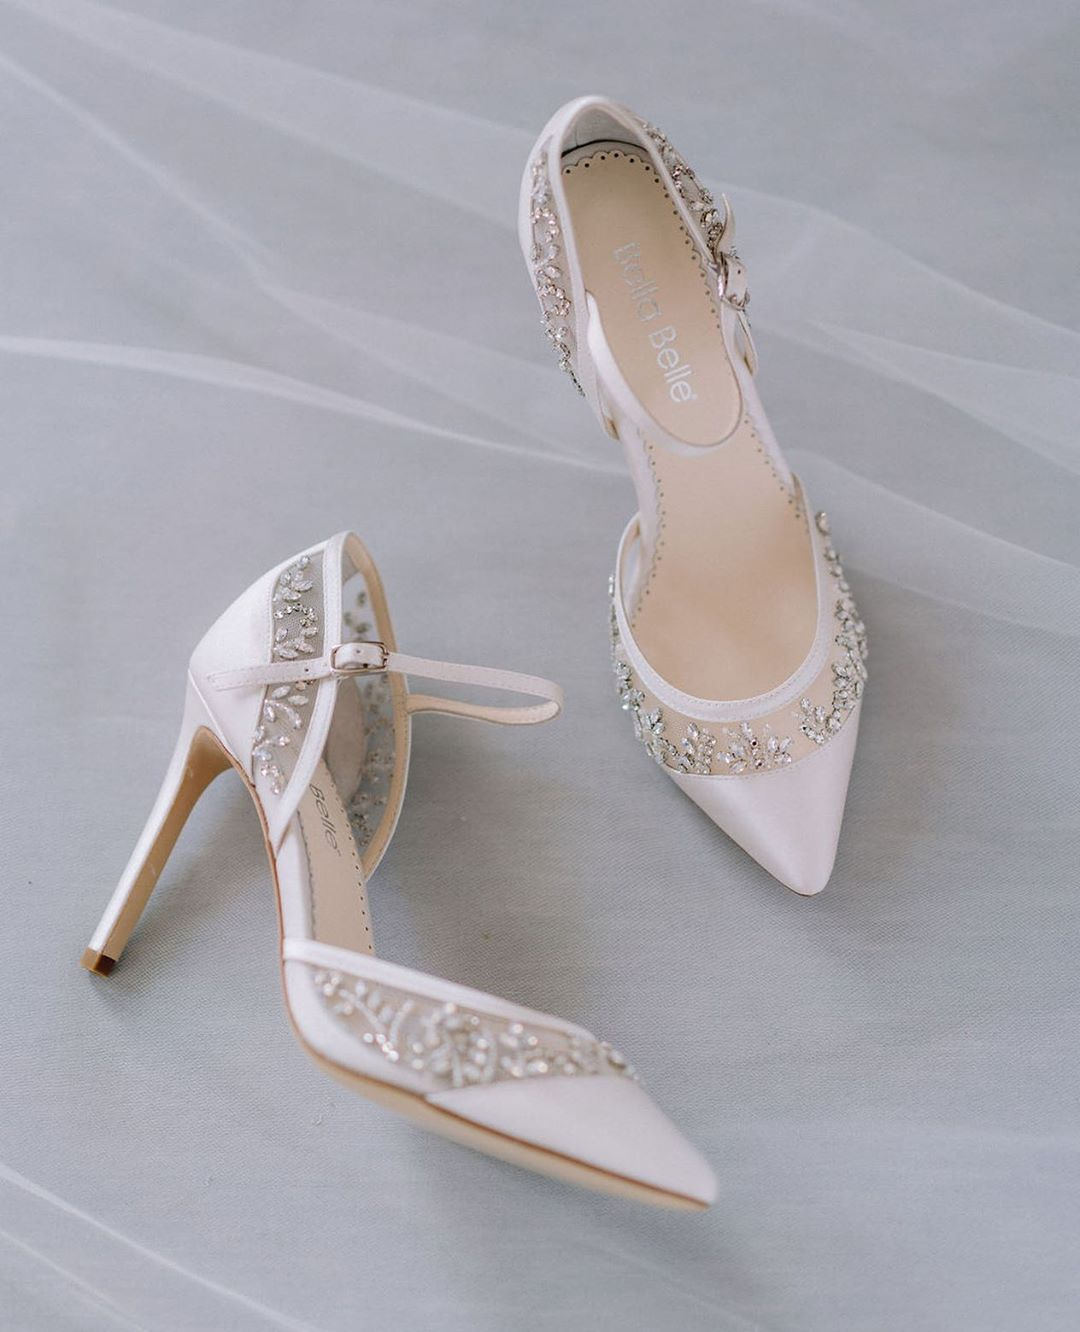 Bella Belle Shoes On Instagram Emma Emma Lazarus And Naught May Daunt Her She Hath Strength For All Ivory Wedding Shoes Bride Shoes Bridal Shoes